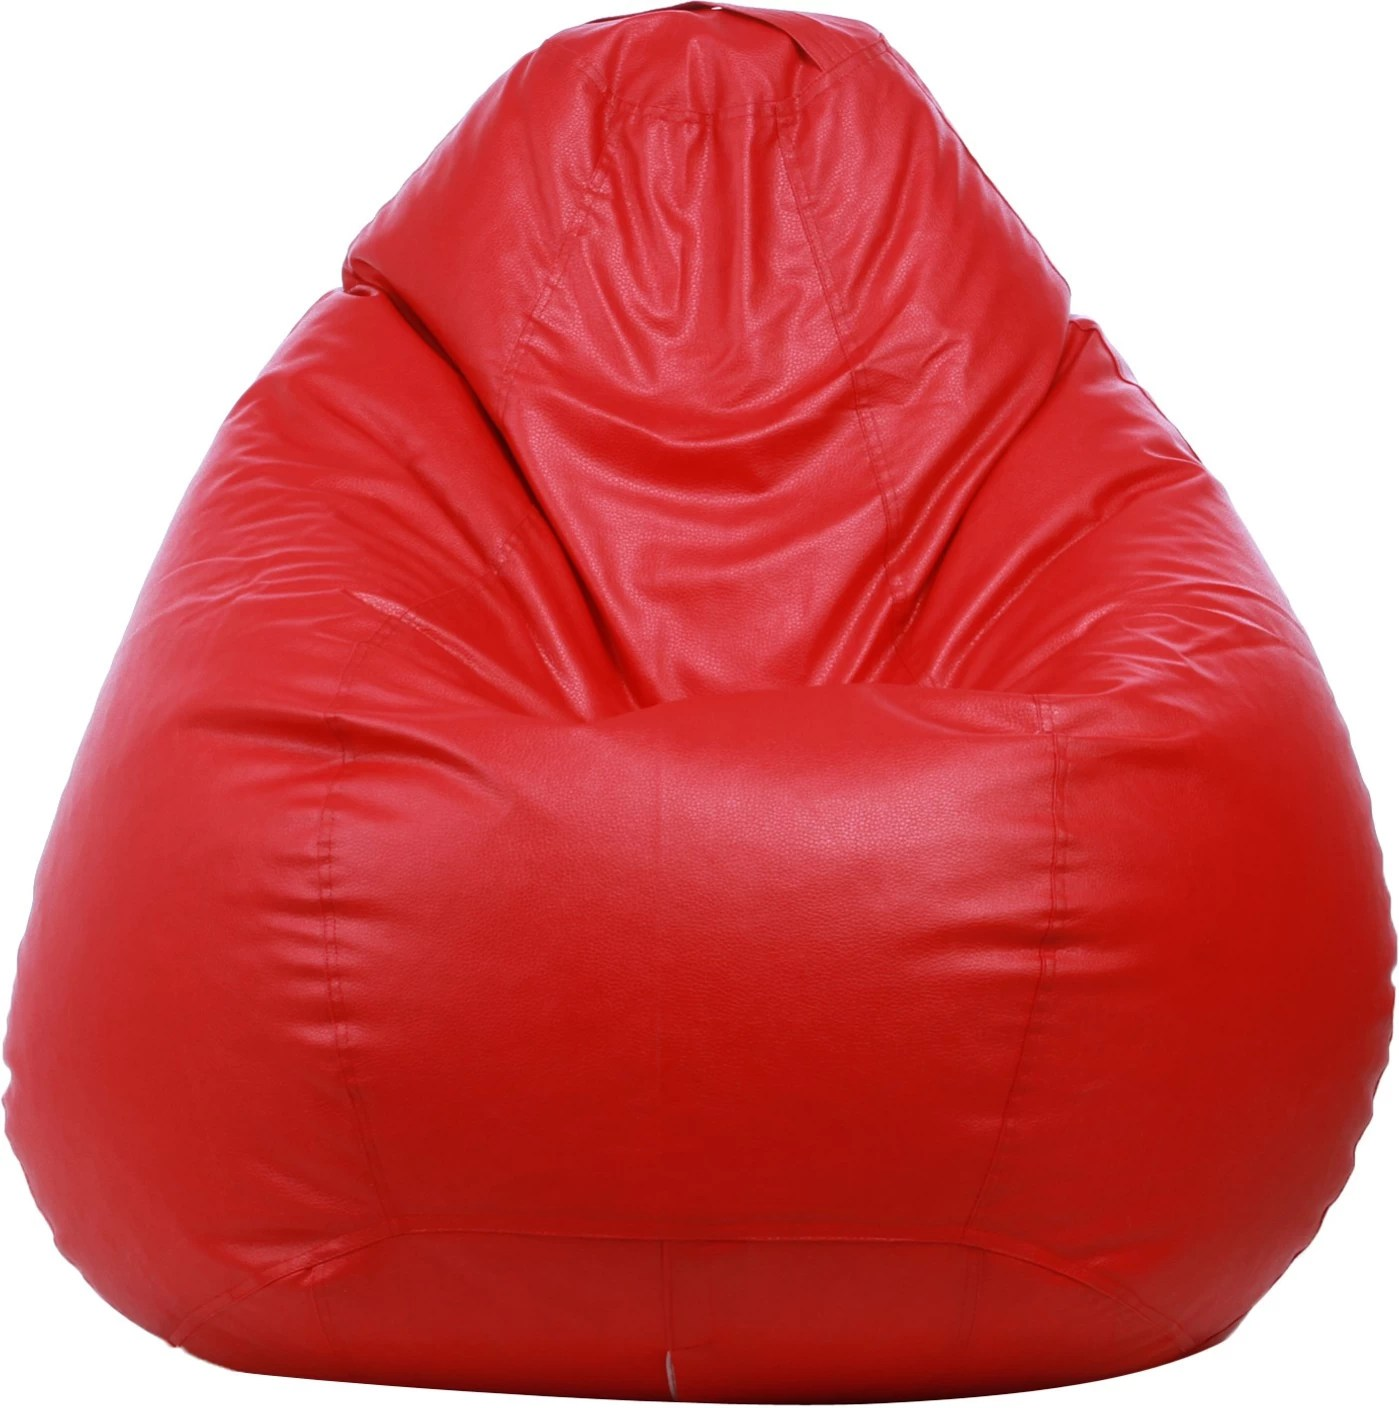 bean bag sofa india replacement cushions memory foam star xl muddha with filling price in